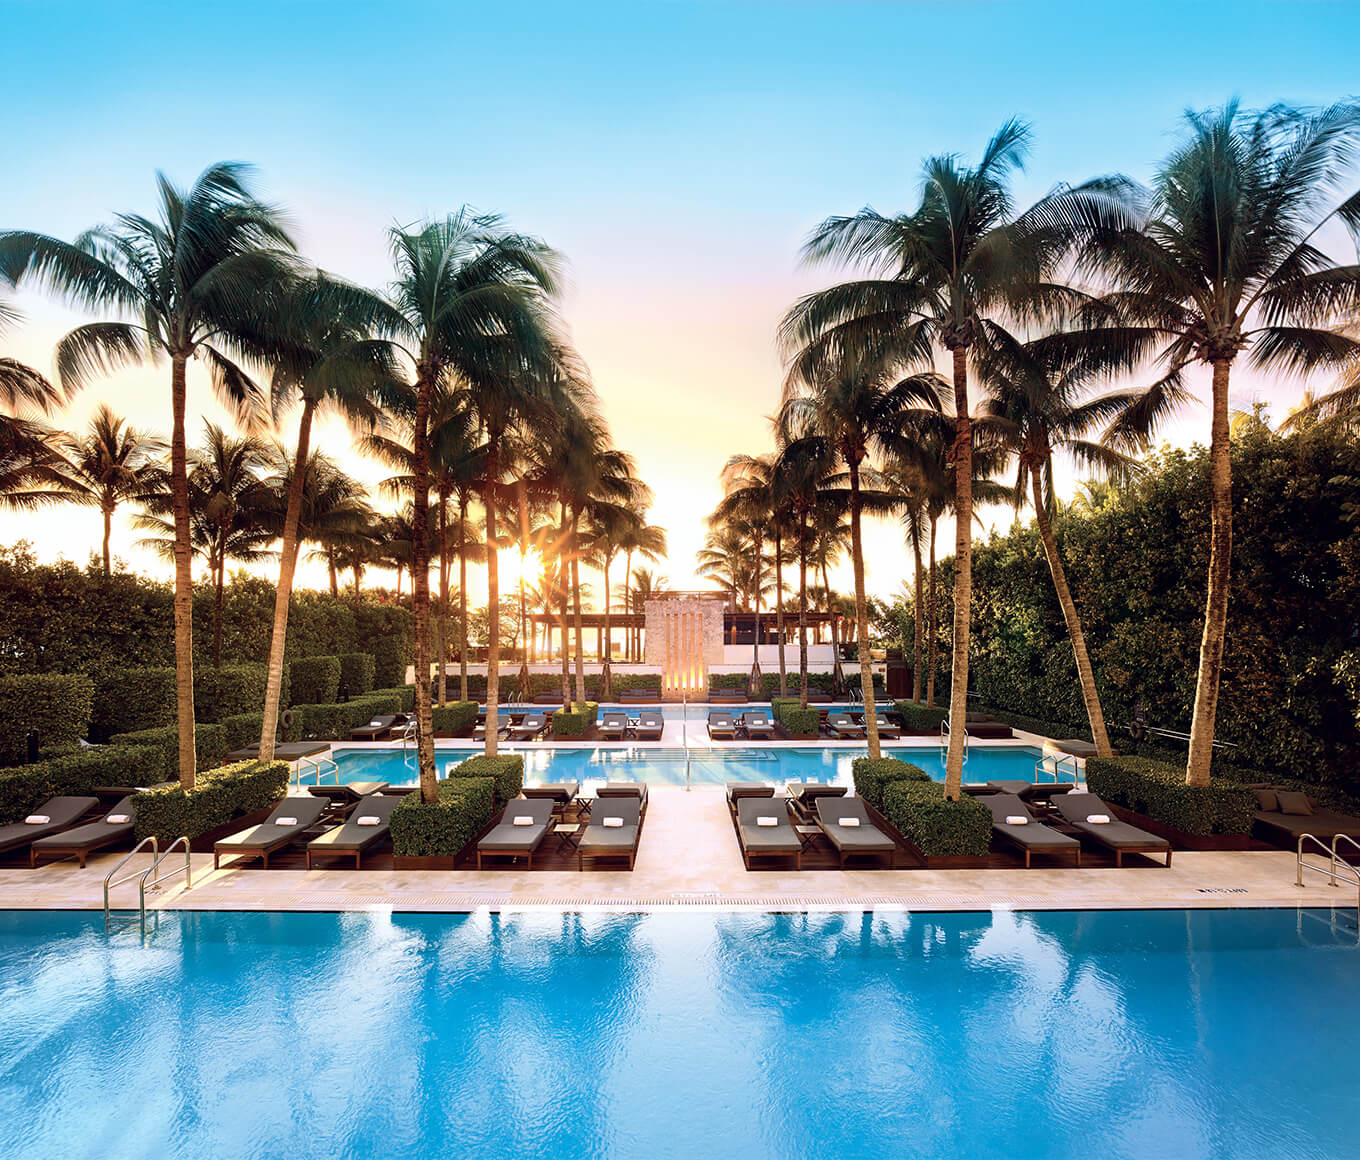 Hotels In Miami Beach >> South Beach Luxury Hotels The Setai Miami Beach 5 Star